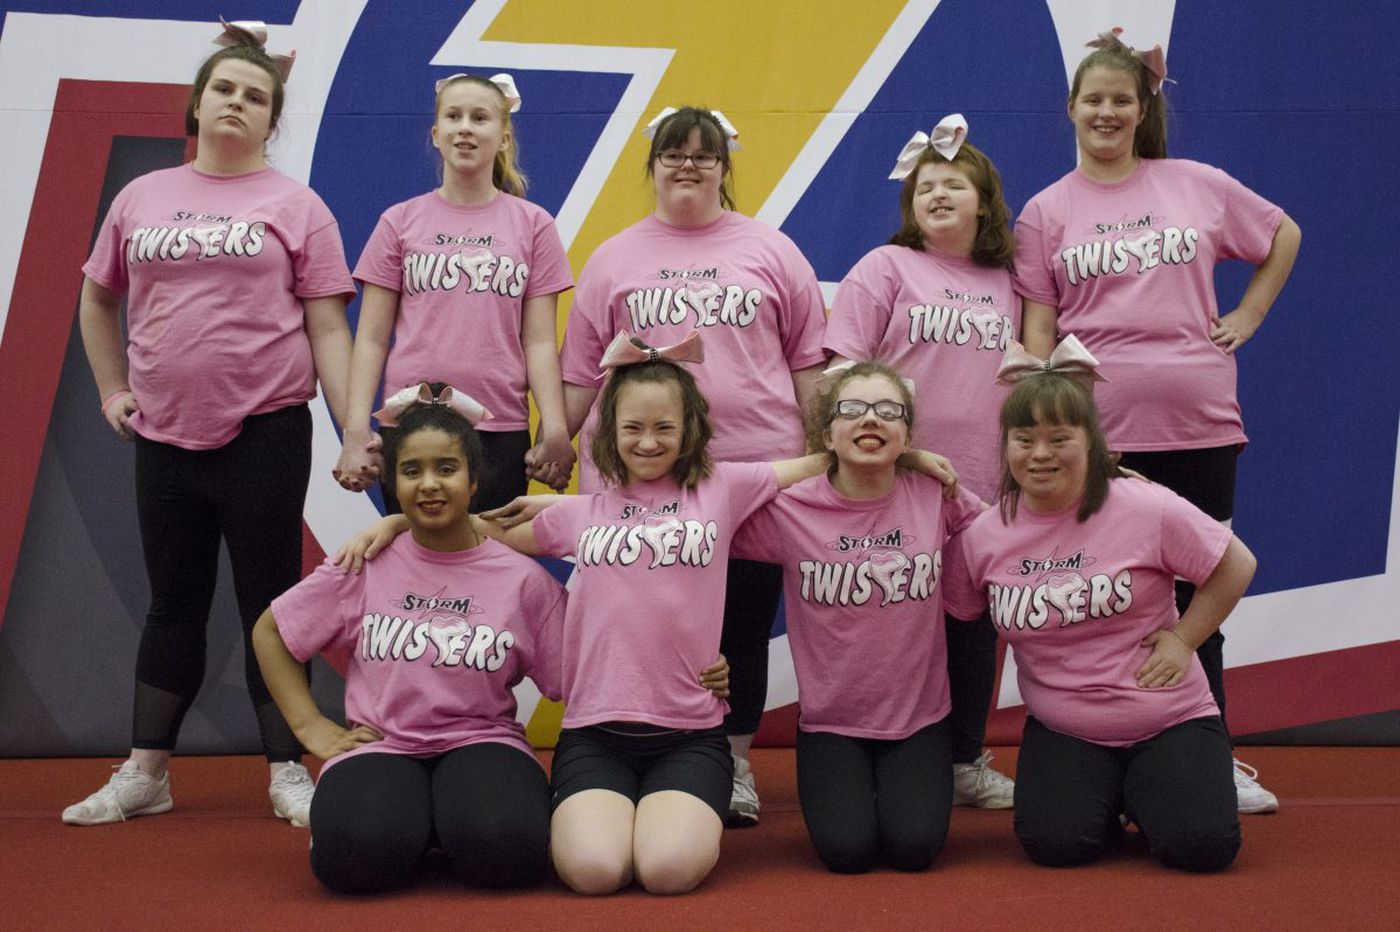 They're going to Disney World! The Twisters of South Jersey, a special needs cheerleading team, heads to Florida for national championship.